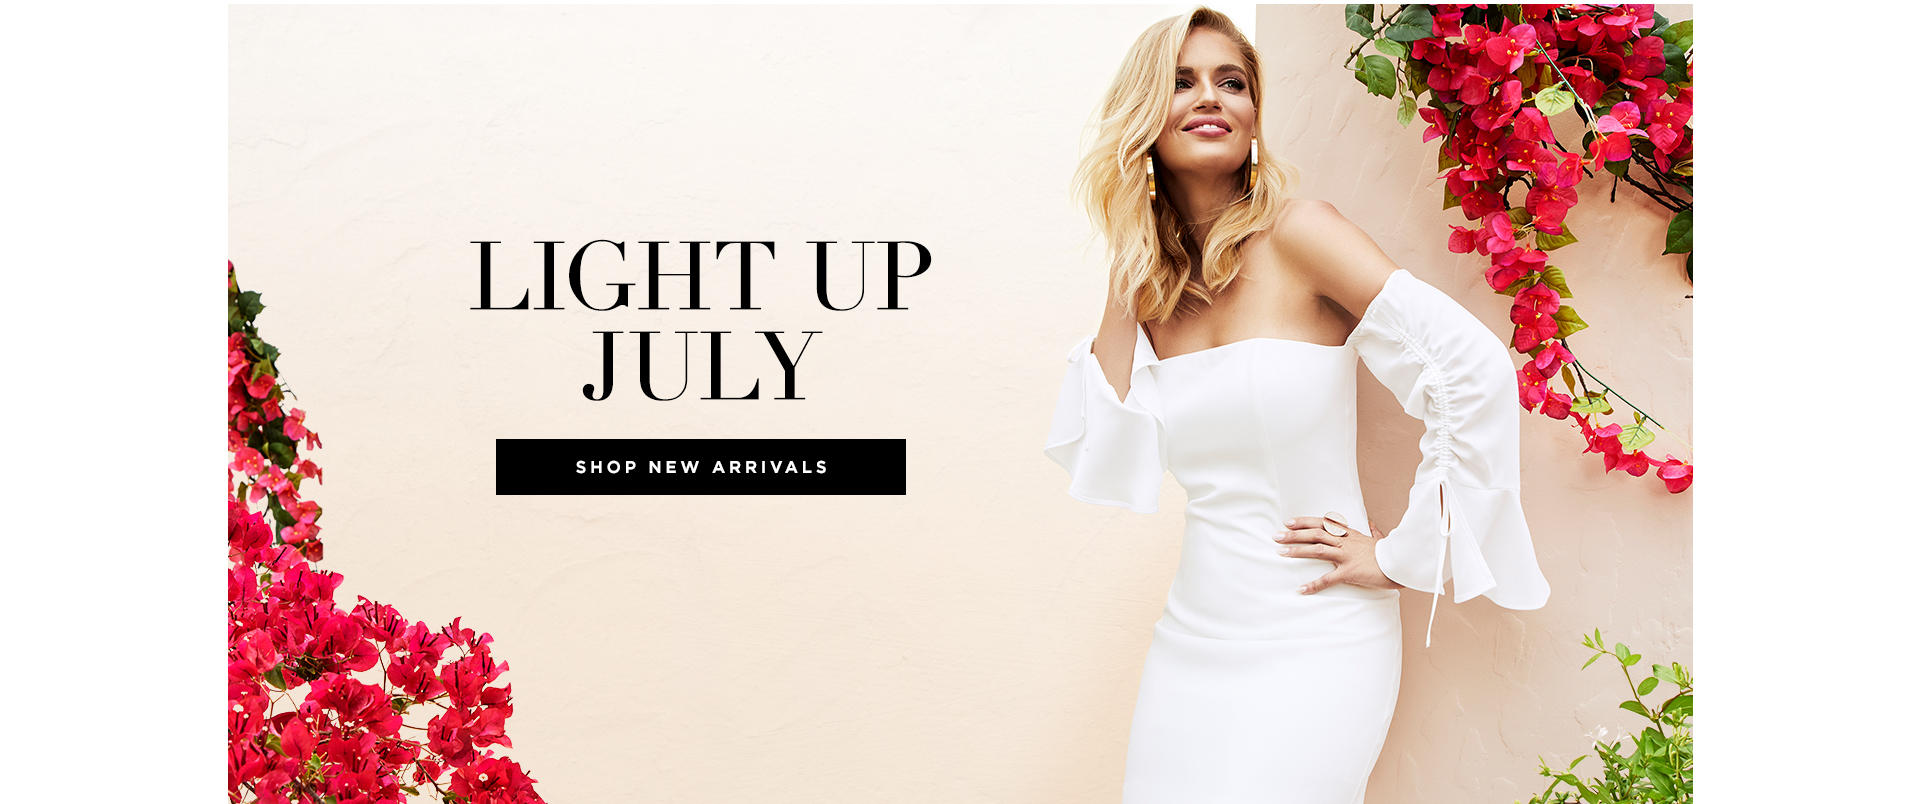 Light Up July